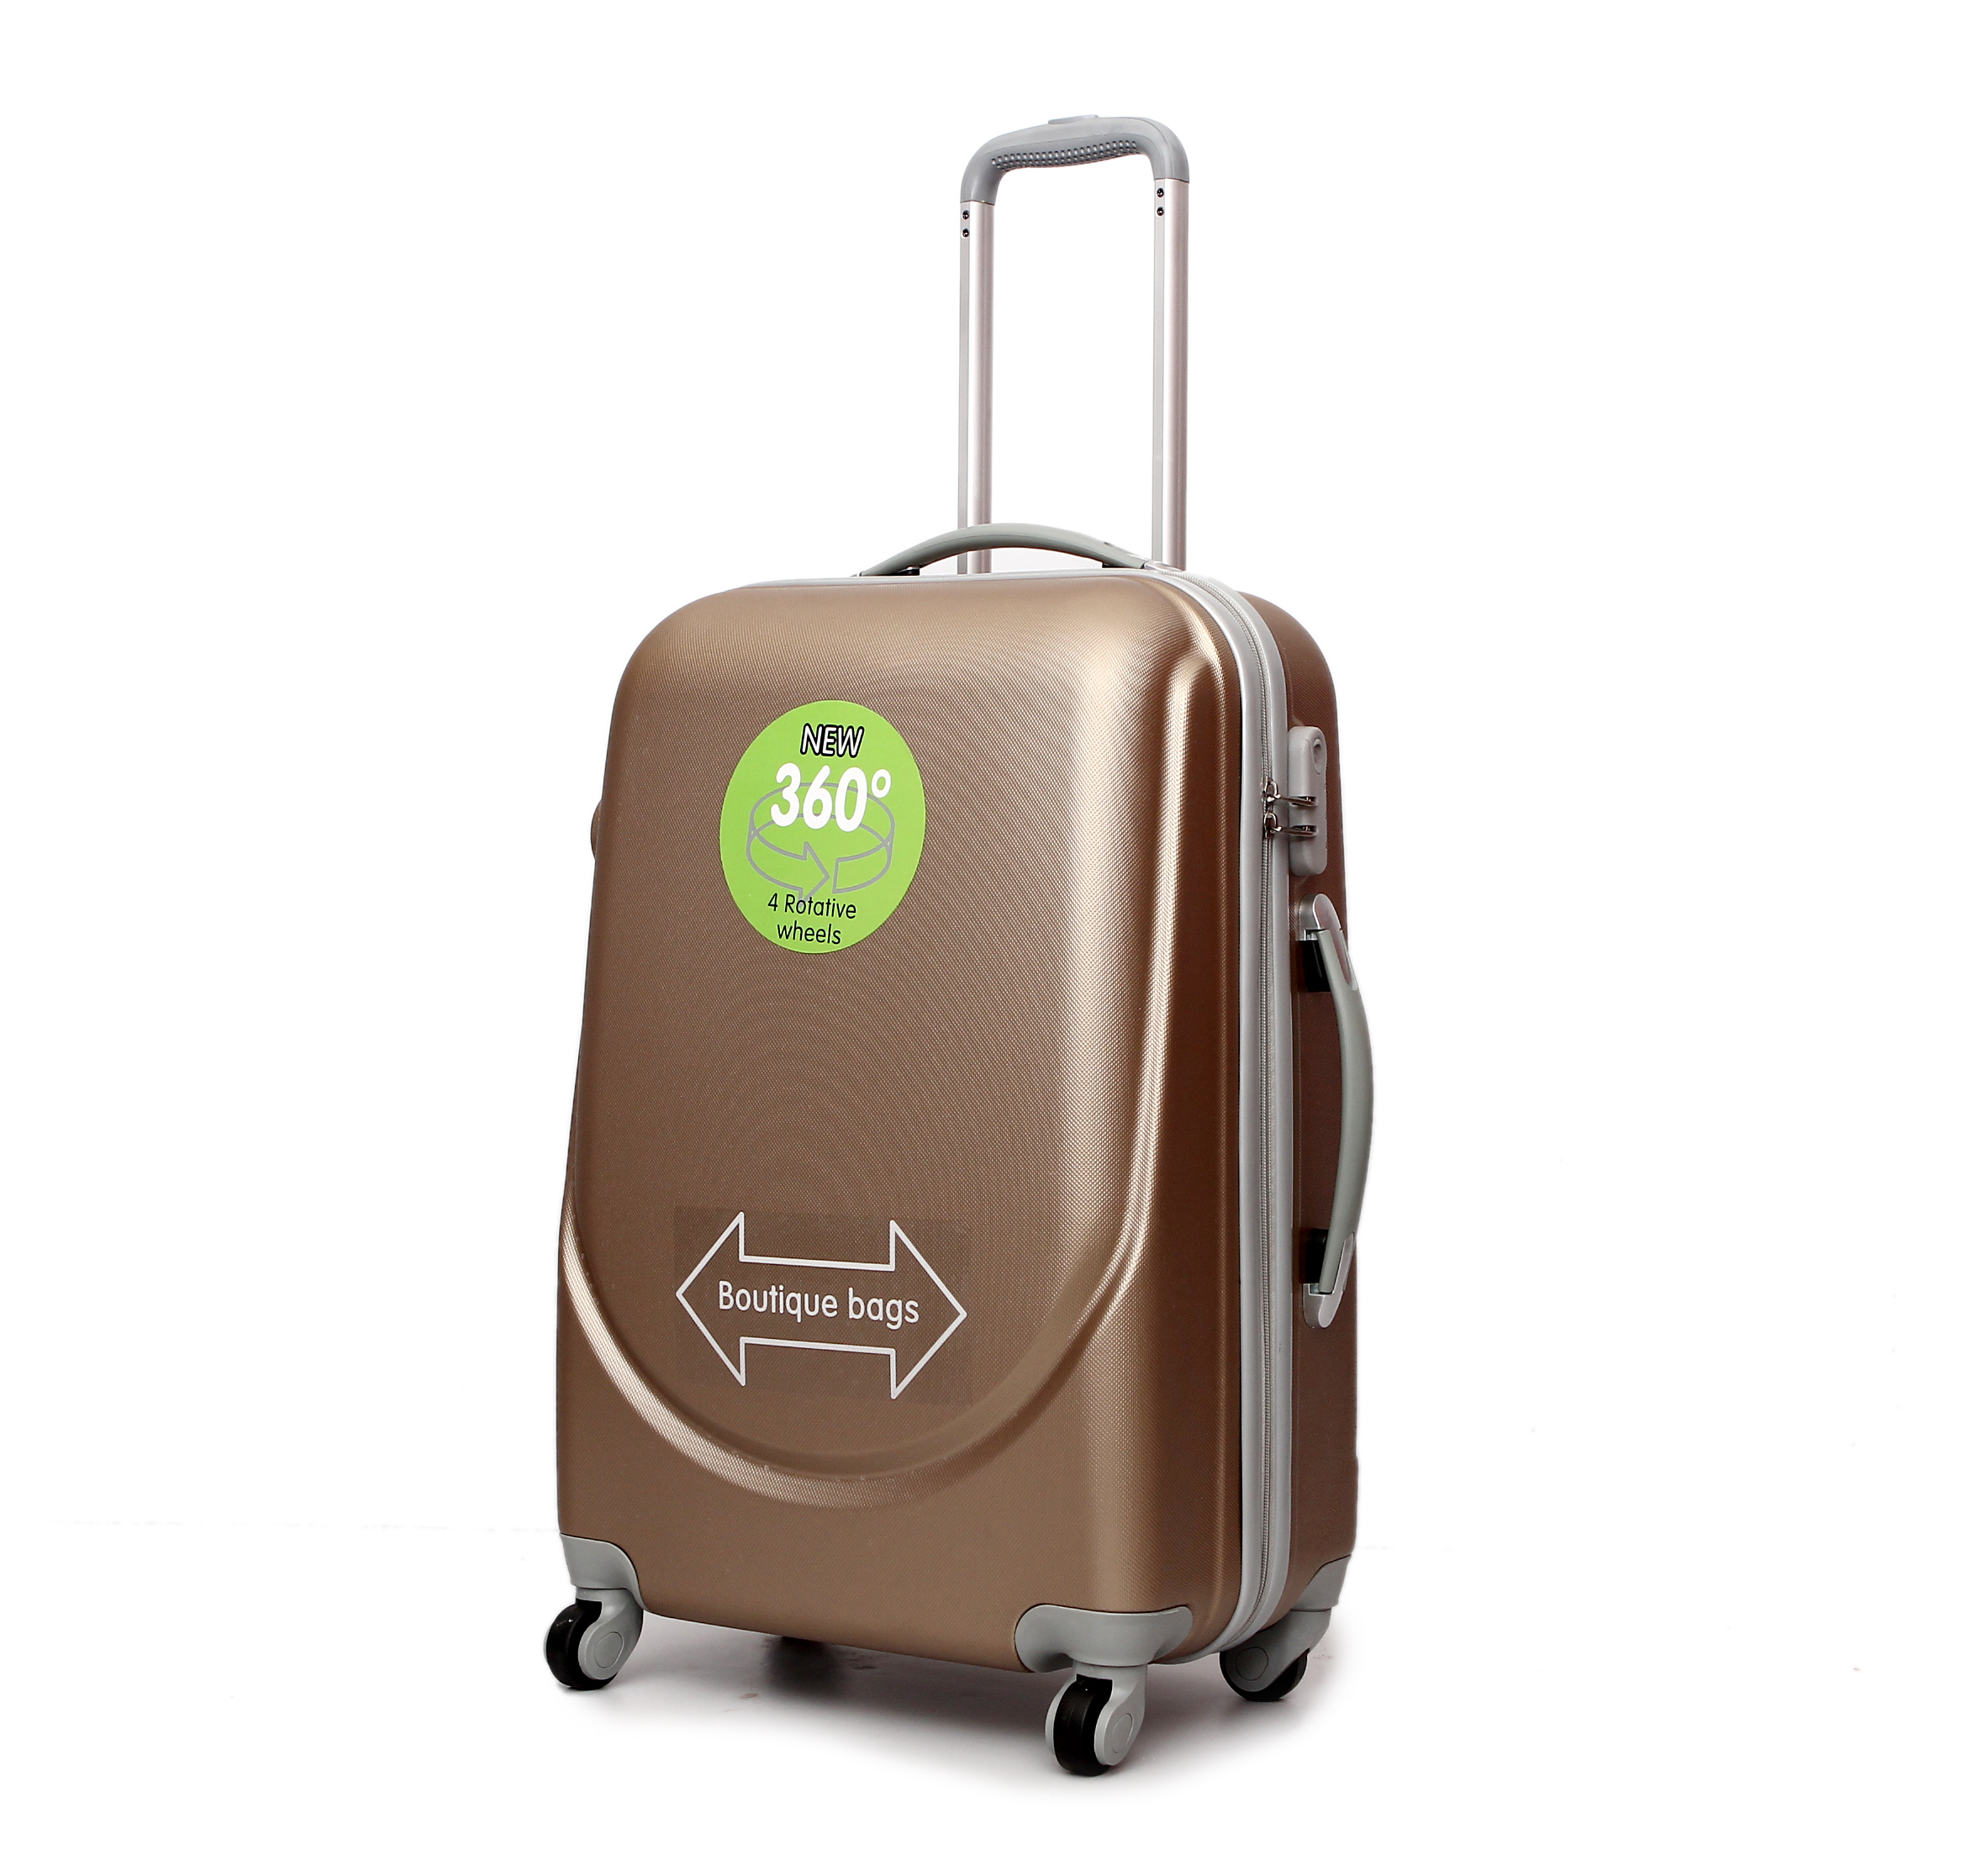 3pcs travel luggage factory price suitcase trolley bag